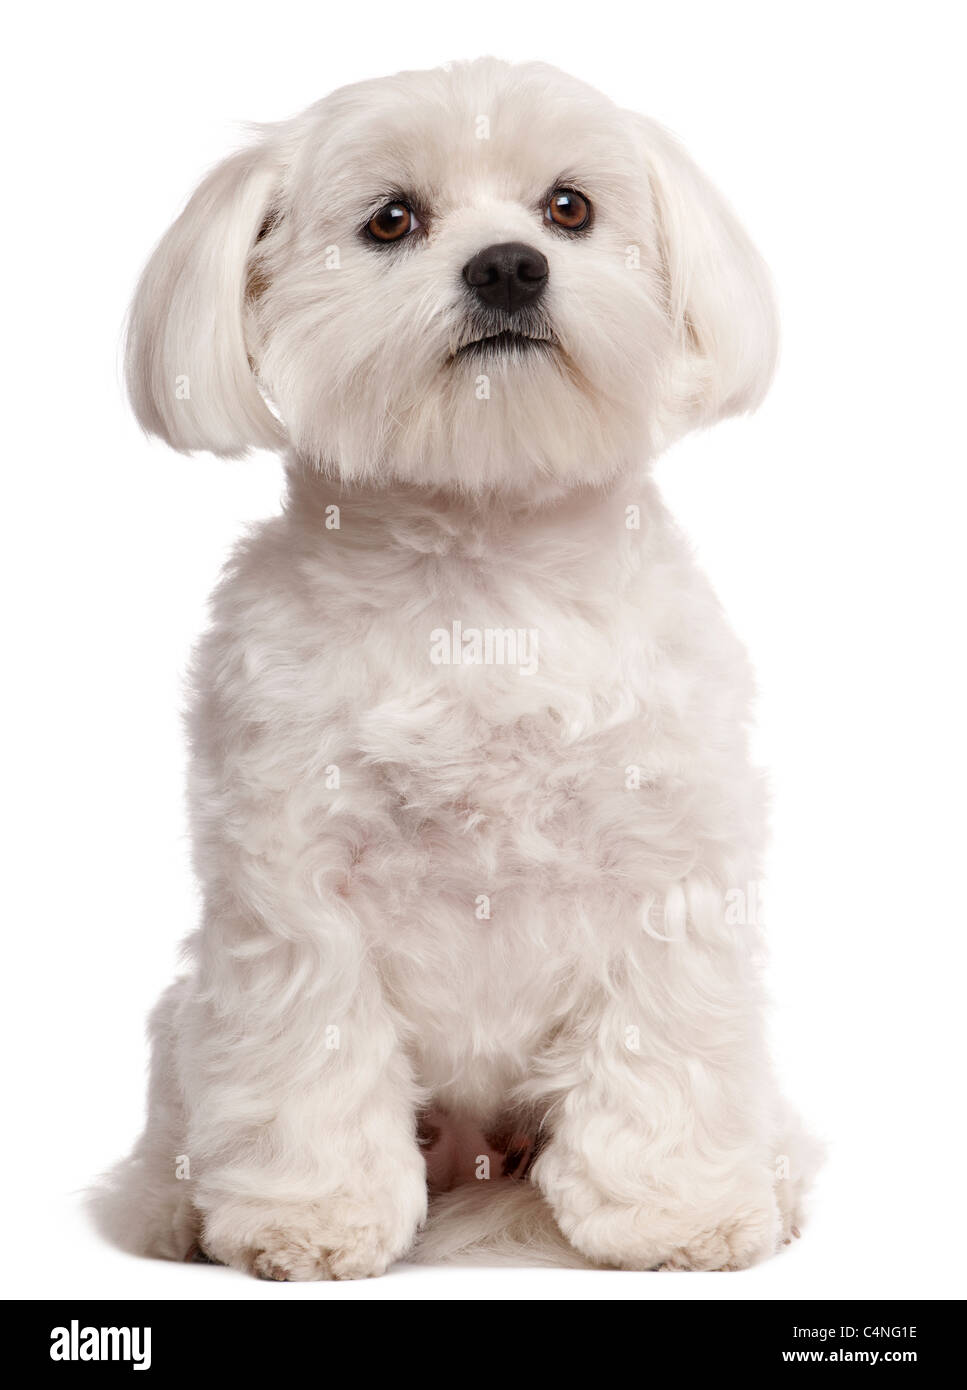 Maltese, 2 years old, sitting in front of white background - Stock Image